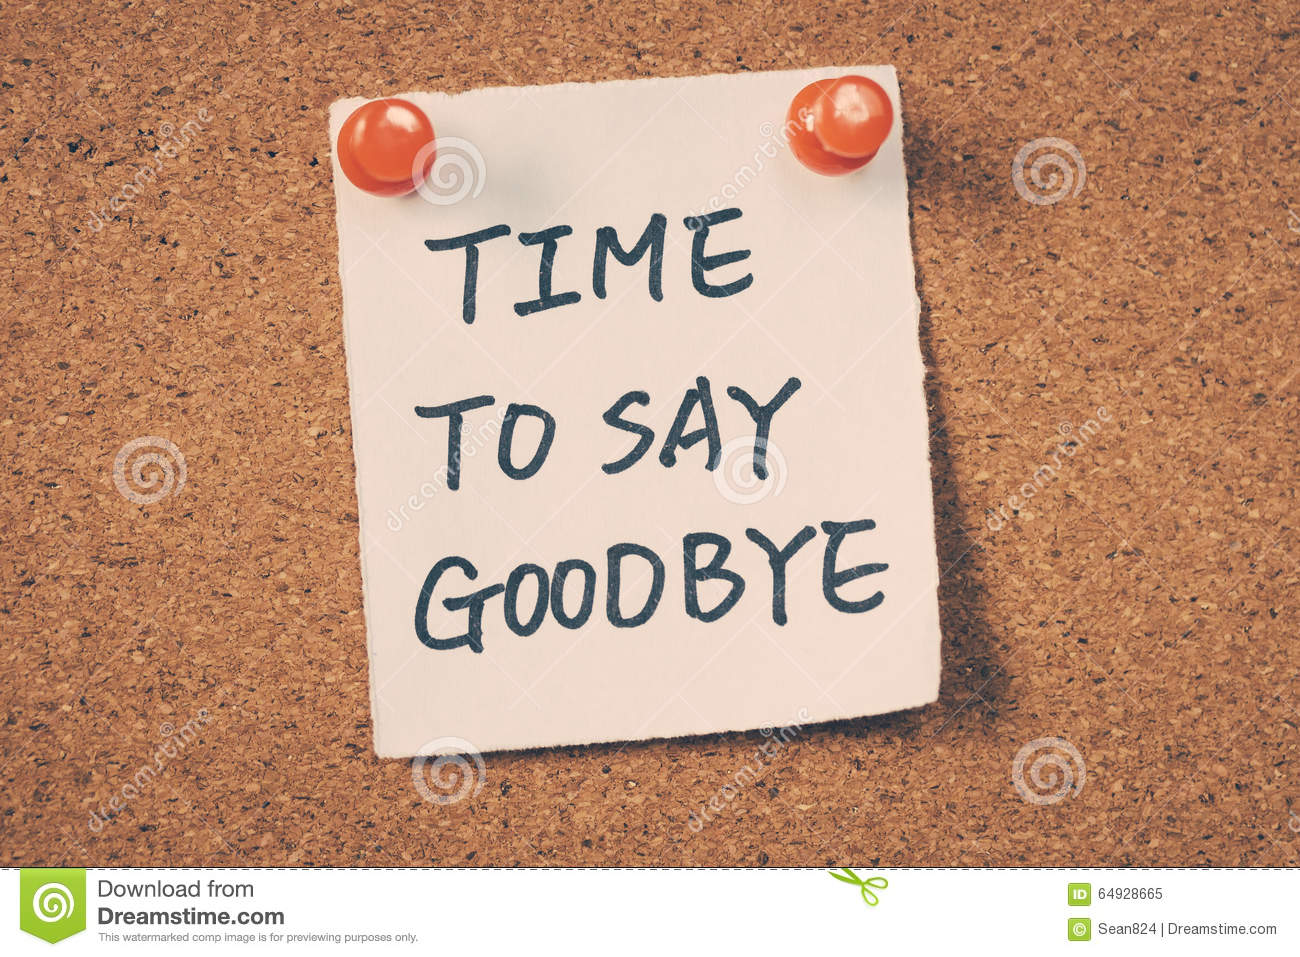 Time to say goodbye message pin on bulletin board.